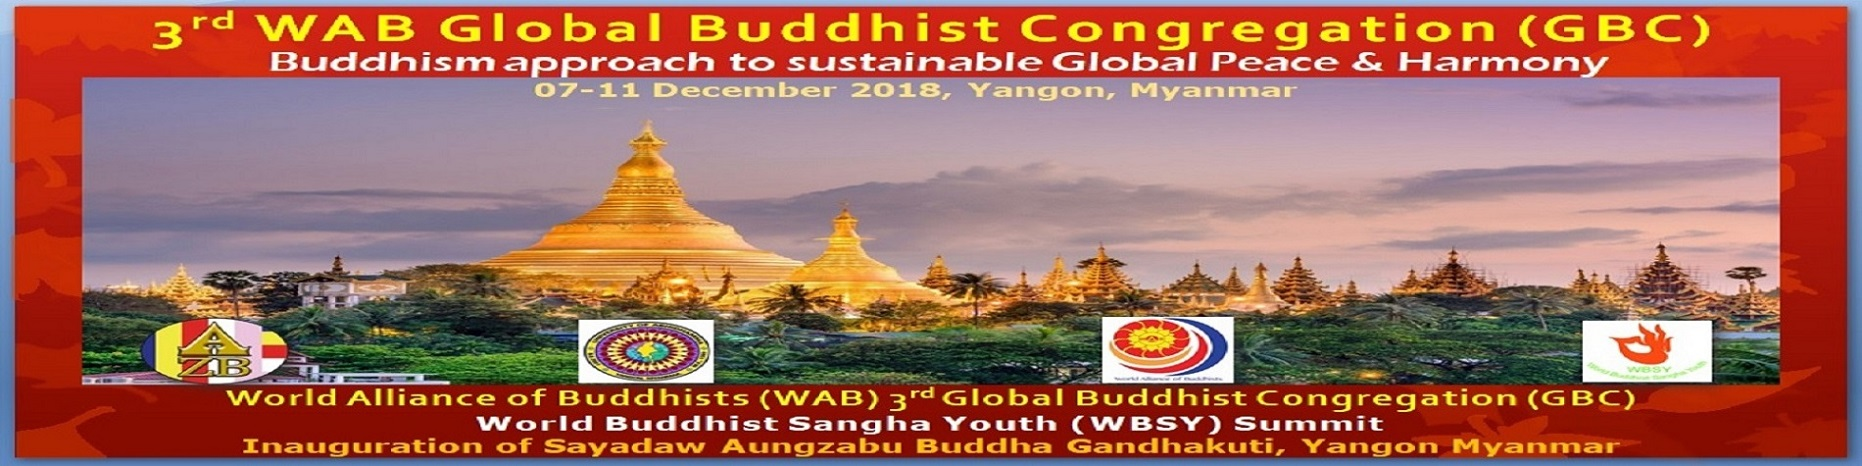 WAB 3rd Global Buddhist Congregation